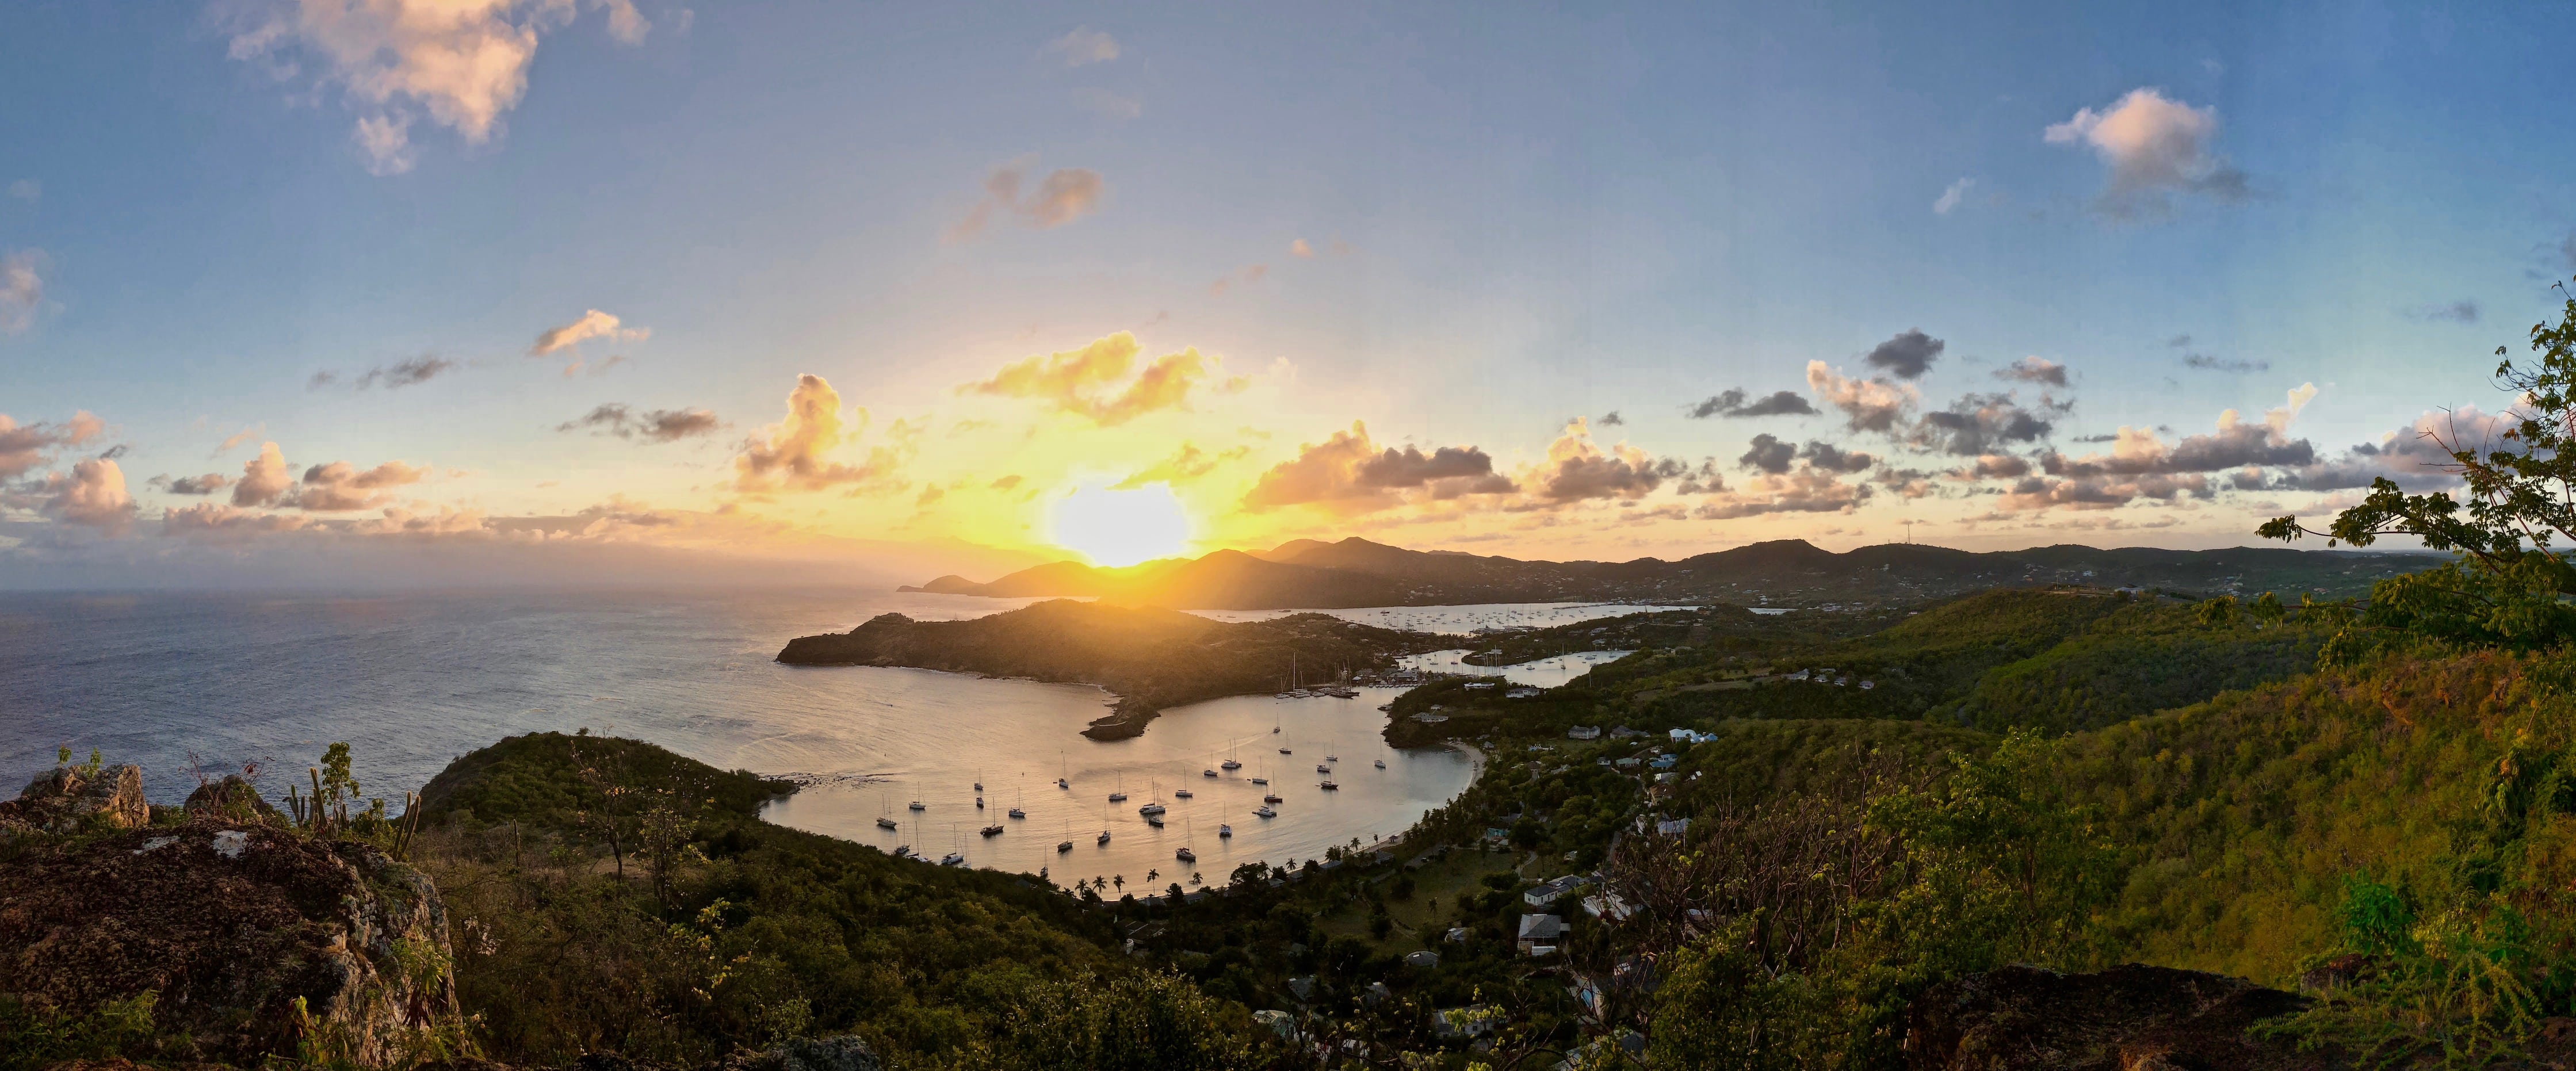 Sunset at Shirley Heights is one of the most popular Antigua attractions on a Sunday